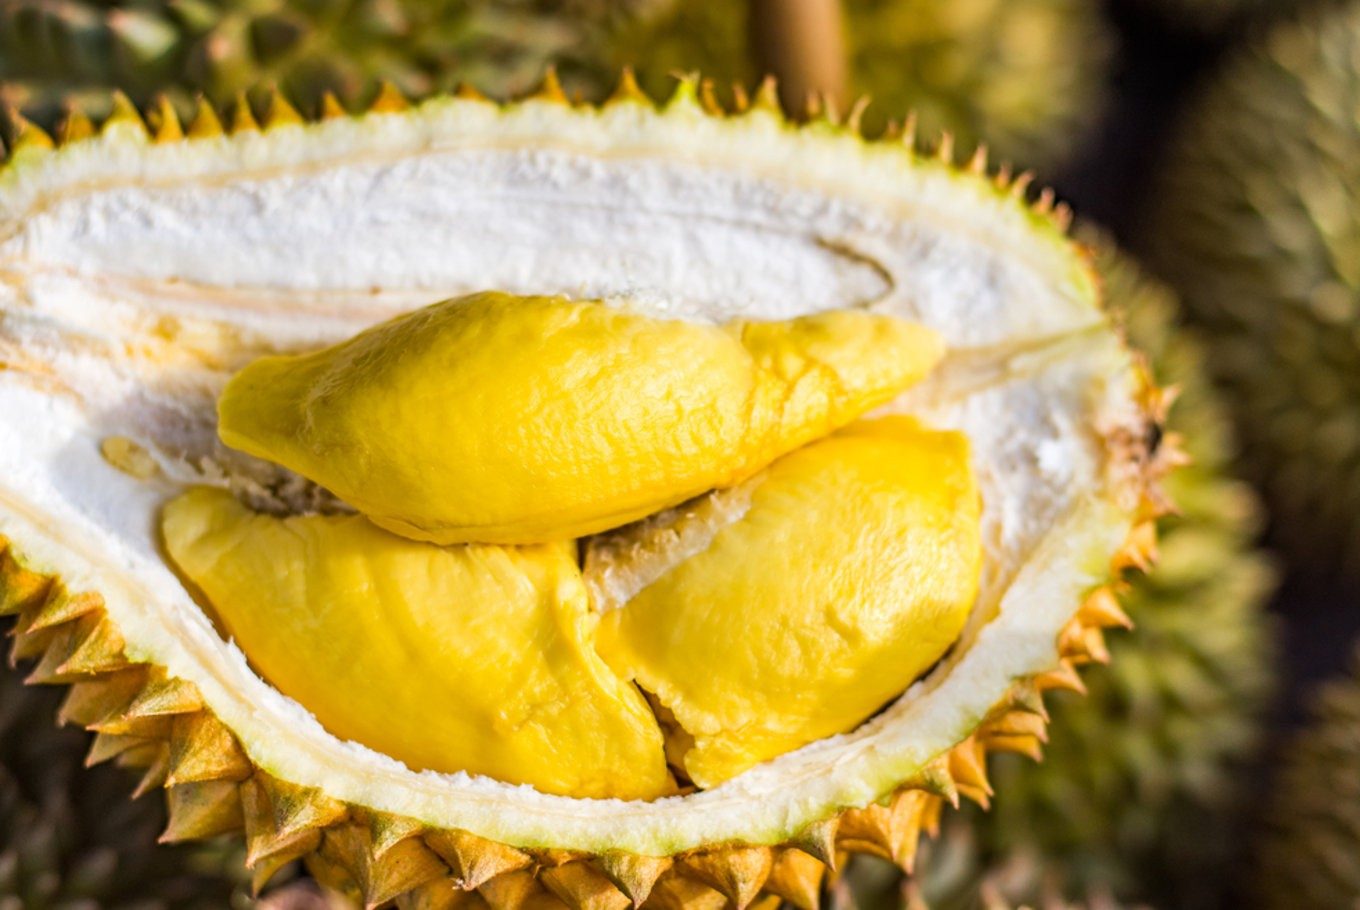 Smell of durian prompts evacuation of Australian university